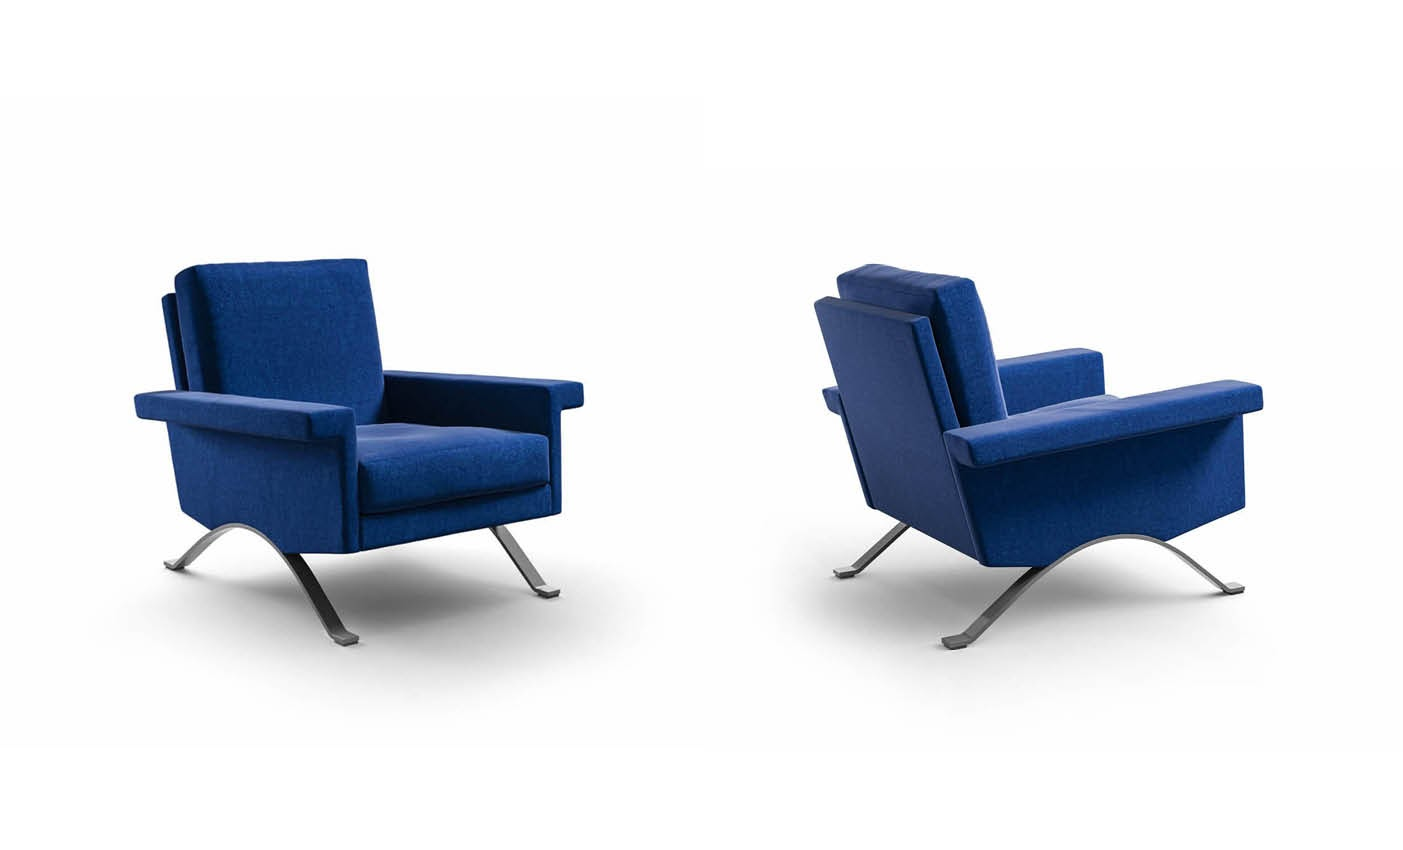 new 875 blue armchair by cassina presented during milan design week 2020